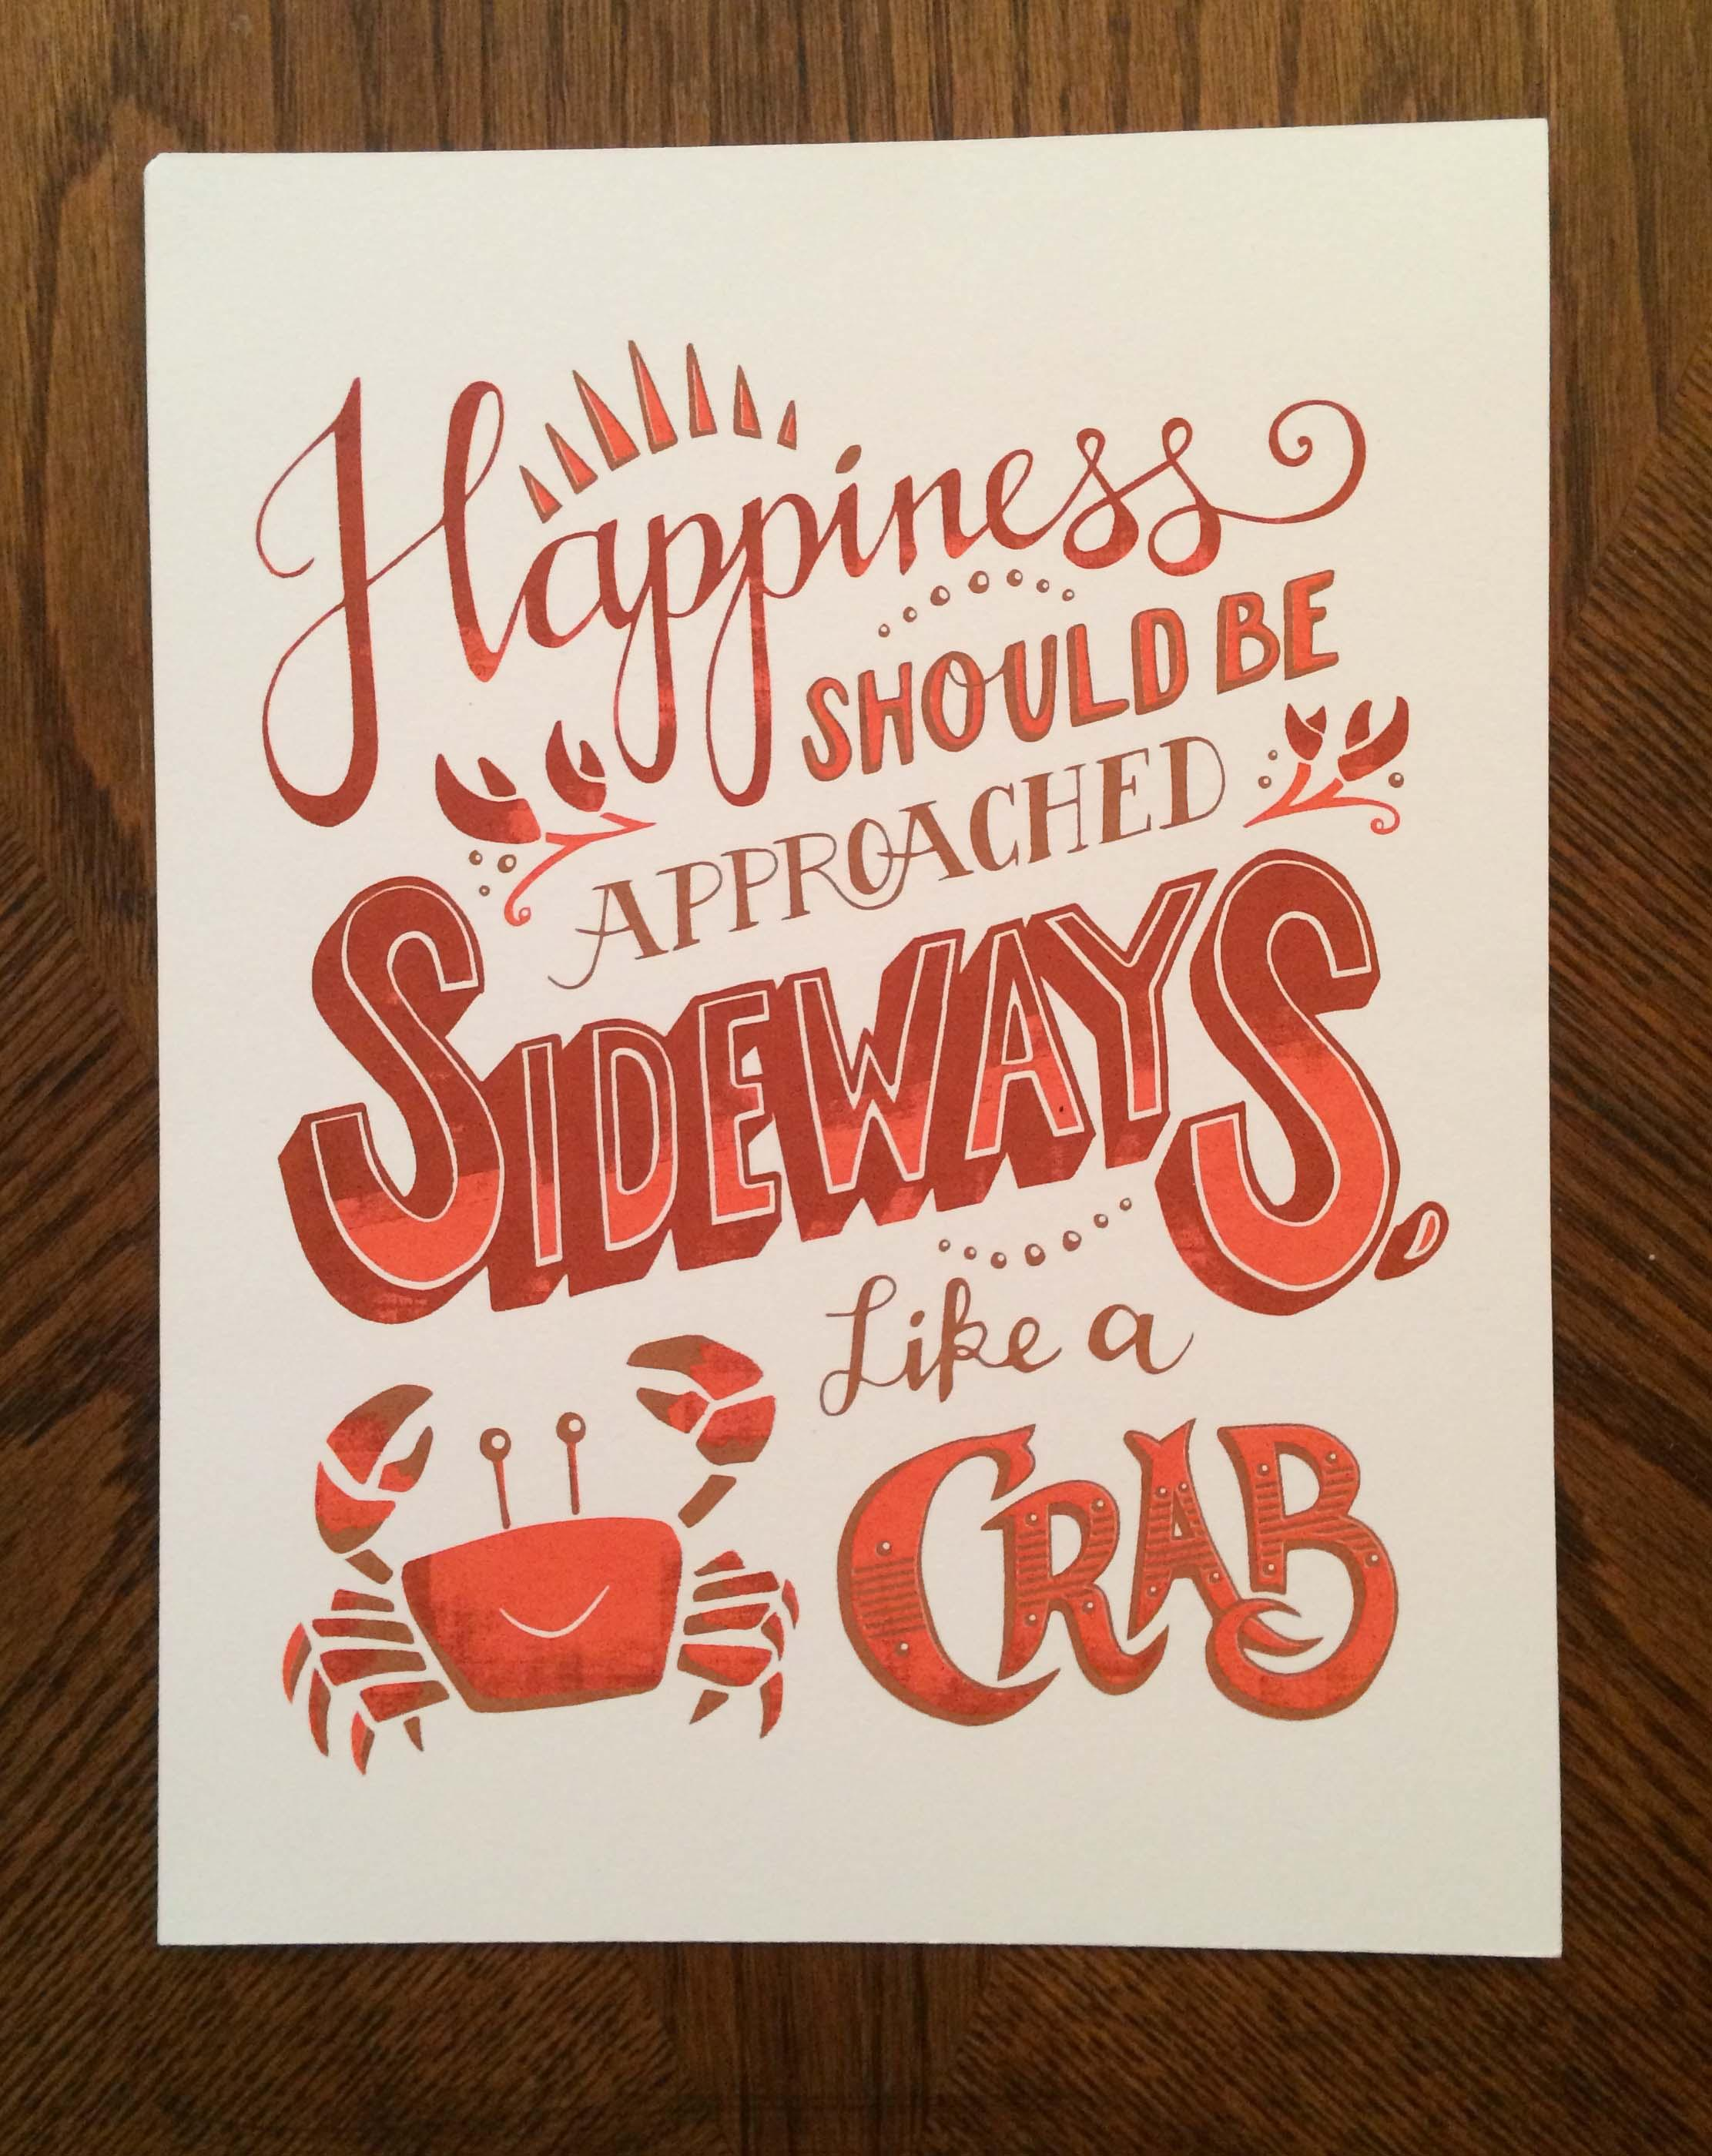 Happiness should be approached sideways, like a crab. - image 2 - student project